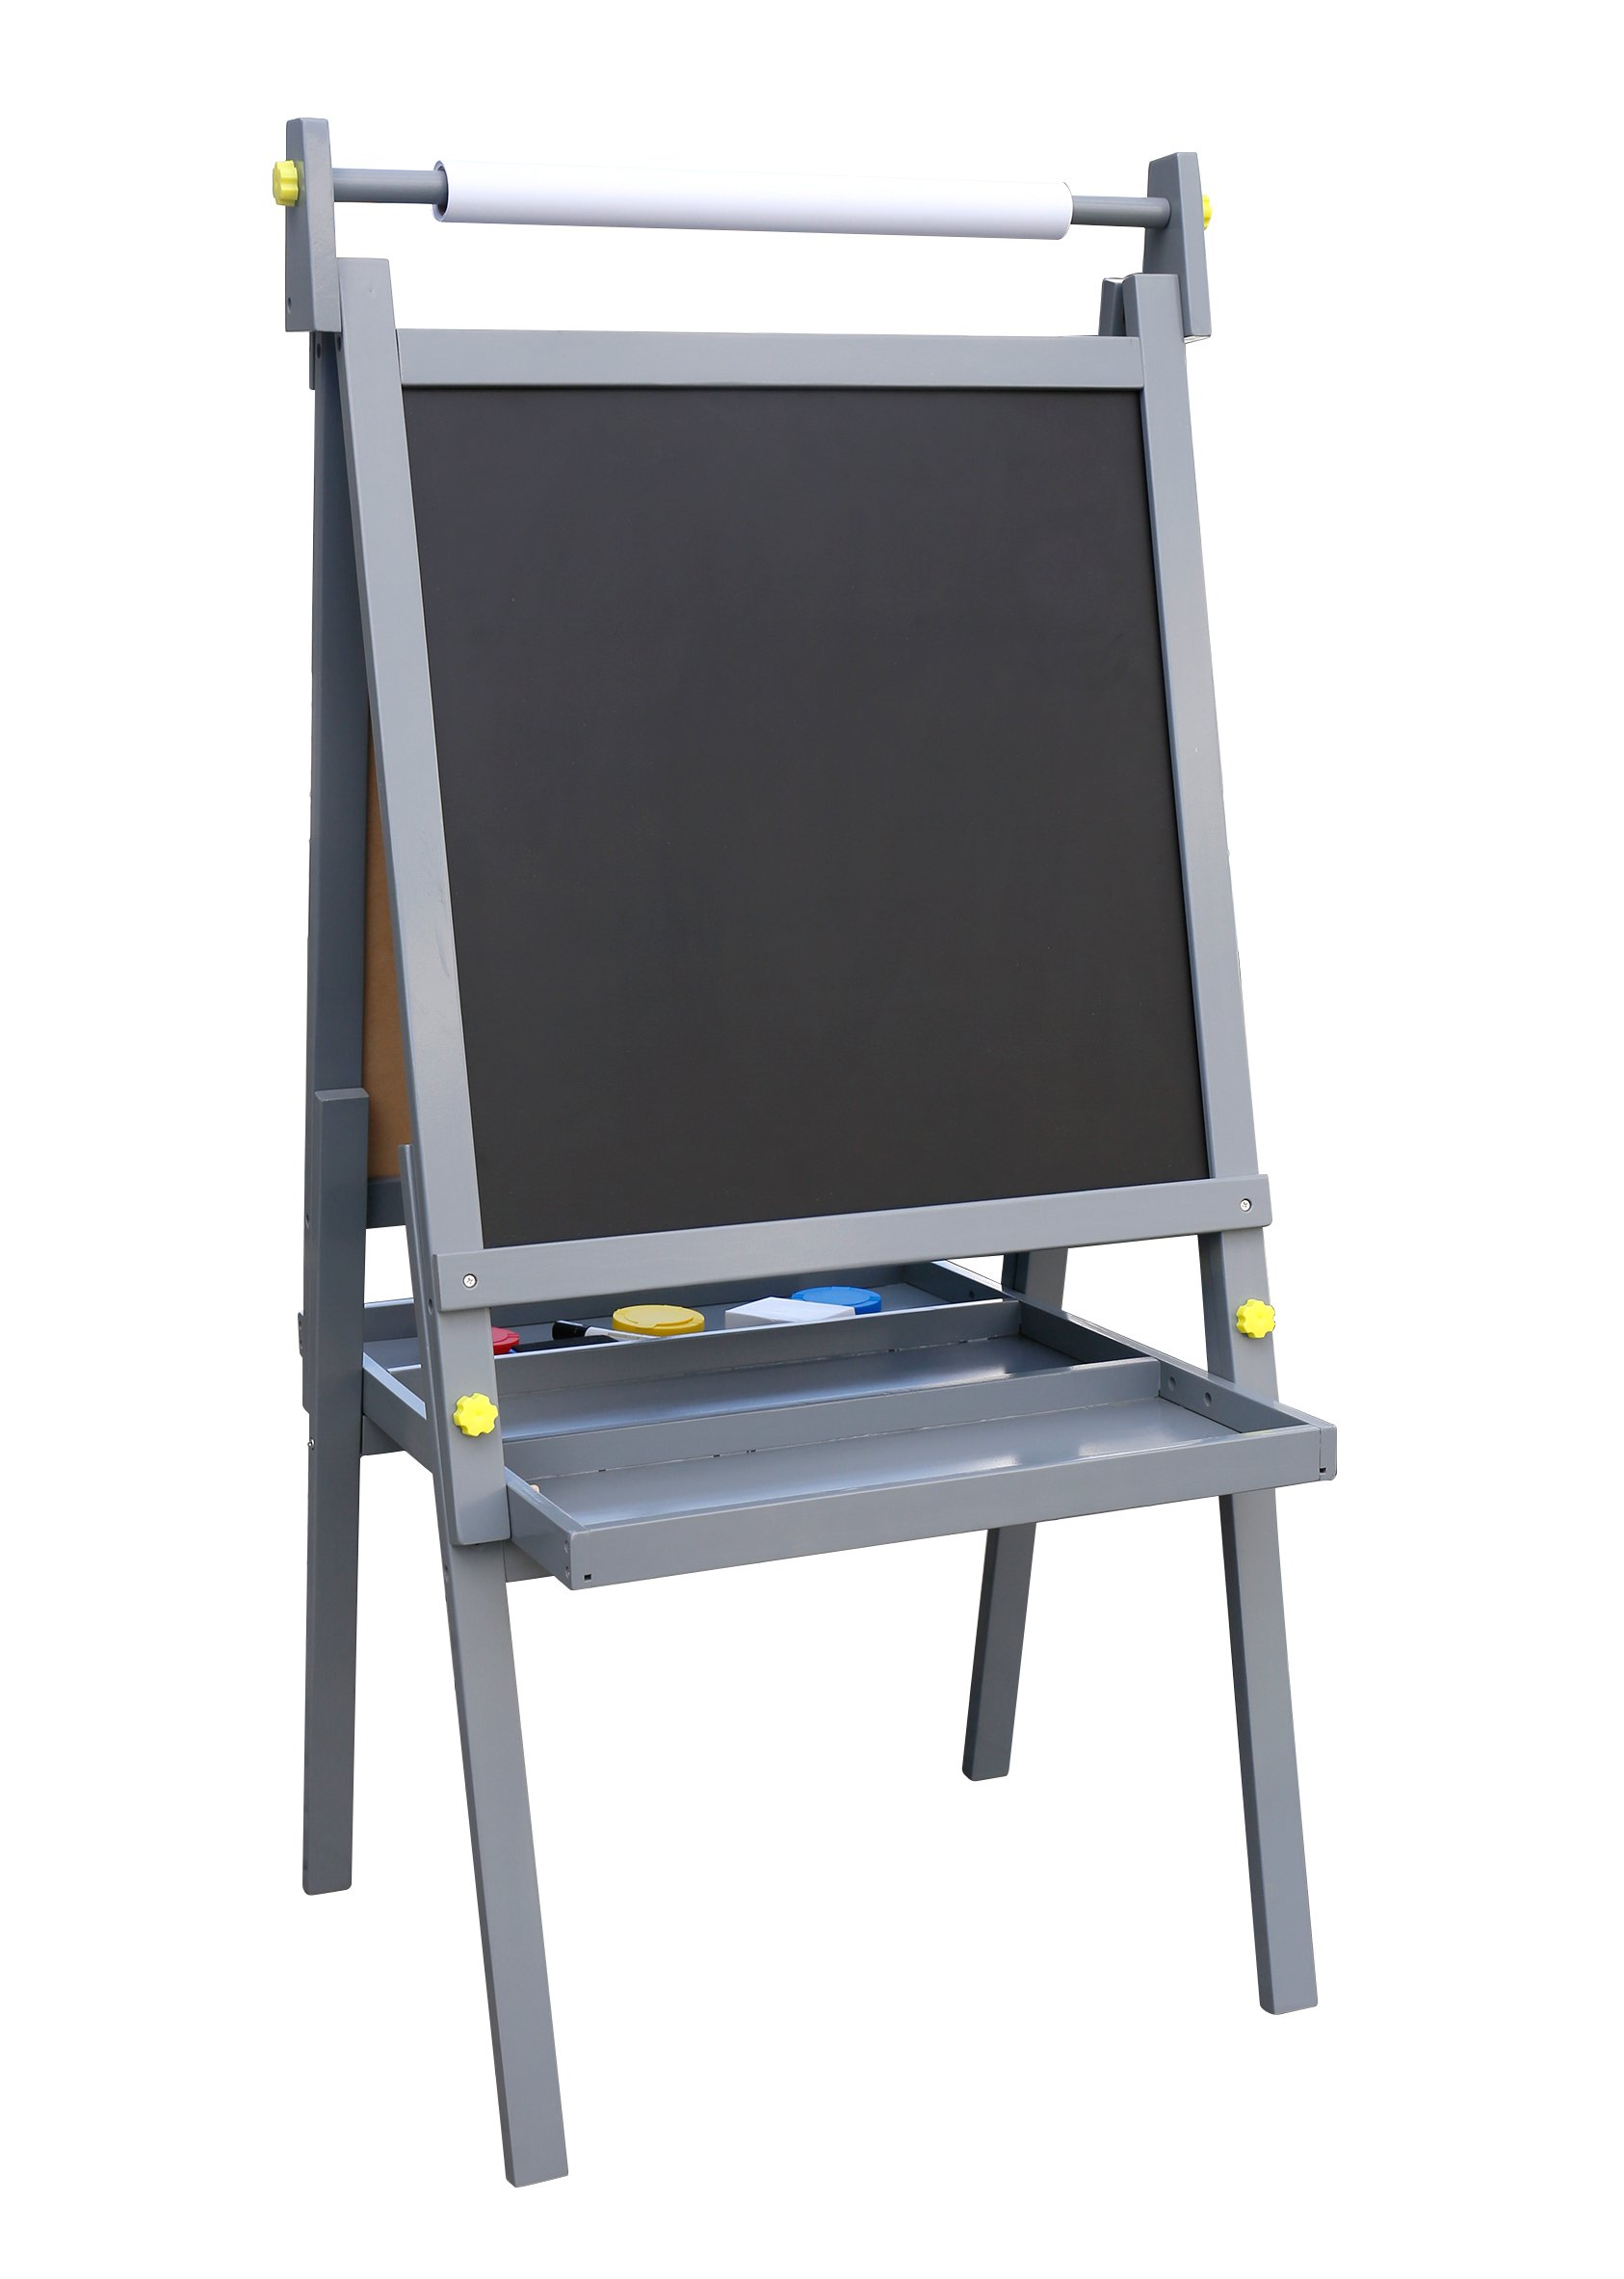 Pidoko Kids Standing Art Wooden Easel, Grey - Magnetic Dry Erase Board, Chalk Board and Paper Roller - 2 Sided A-Frame with storage compartment and paint cups - Art Station for Boys & Girls (Gray)